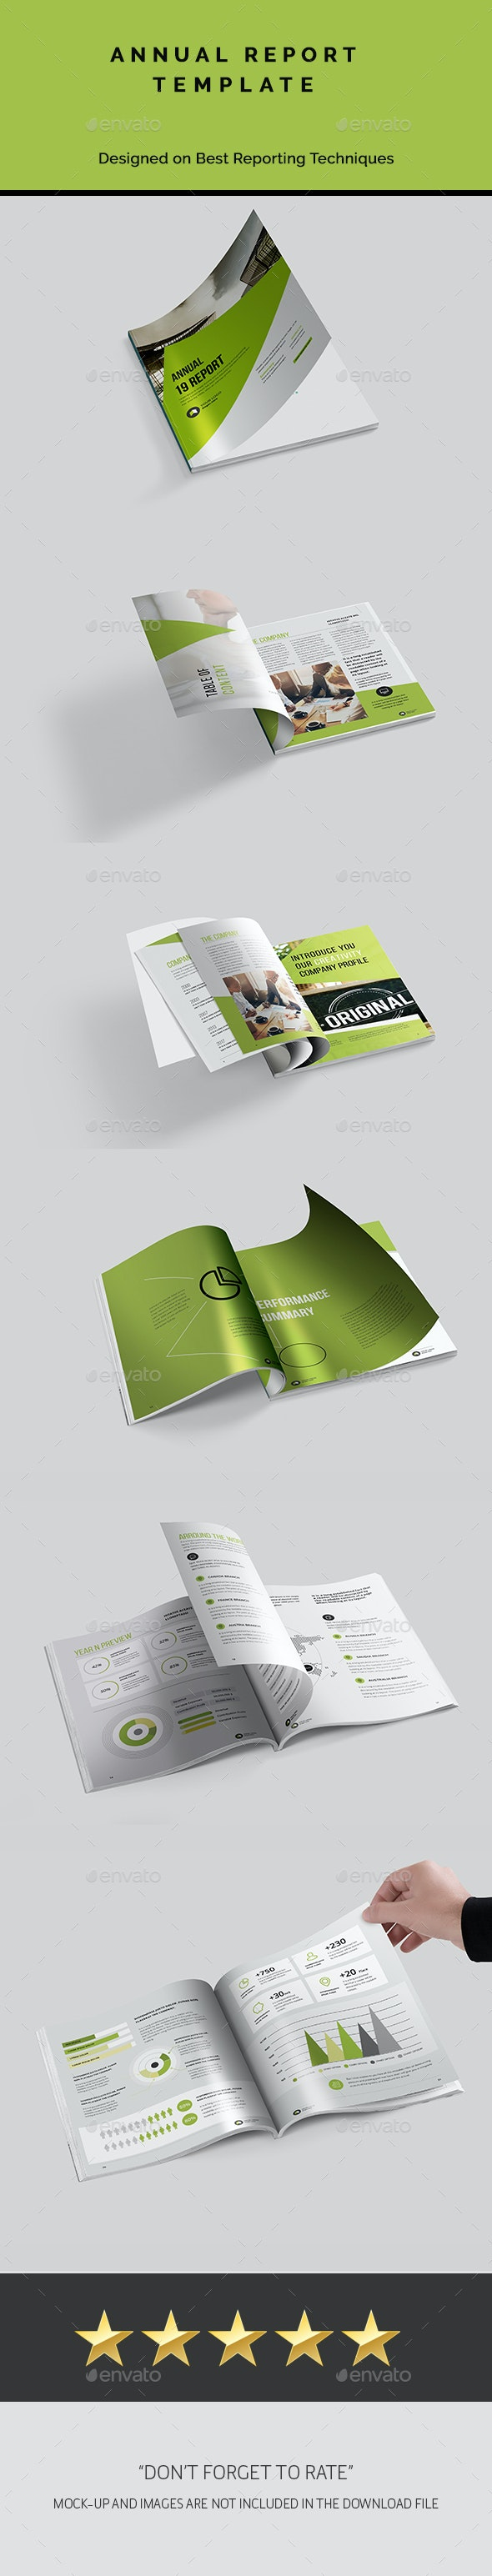 Annual Report Template - Corporate Flyers